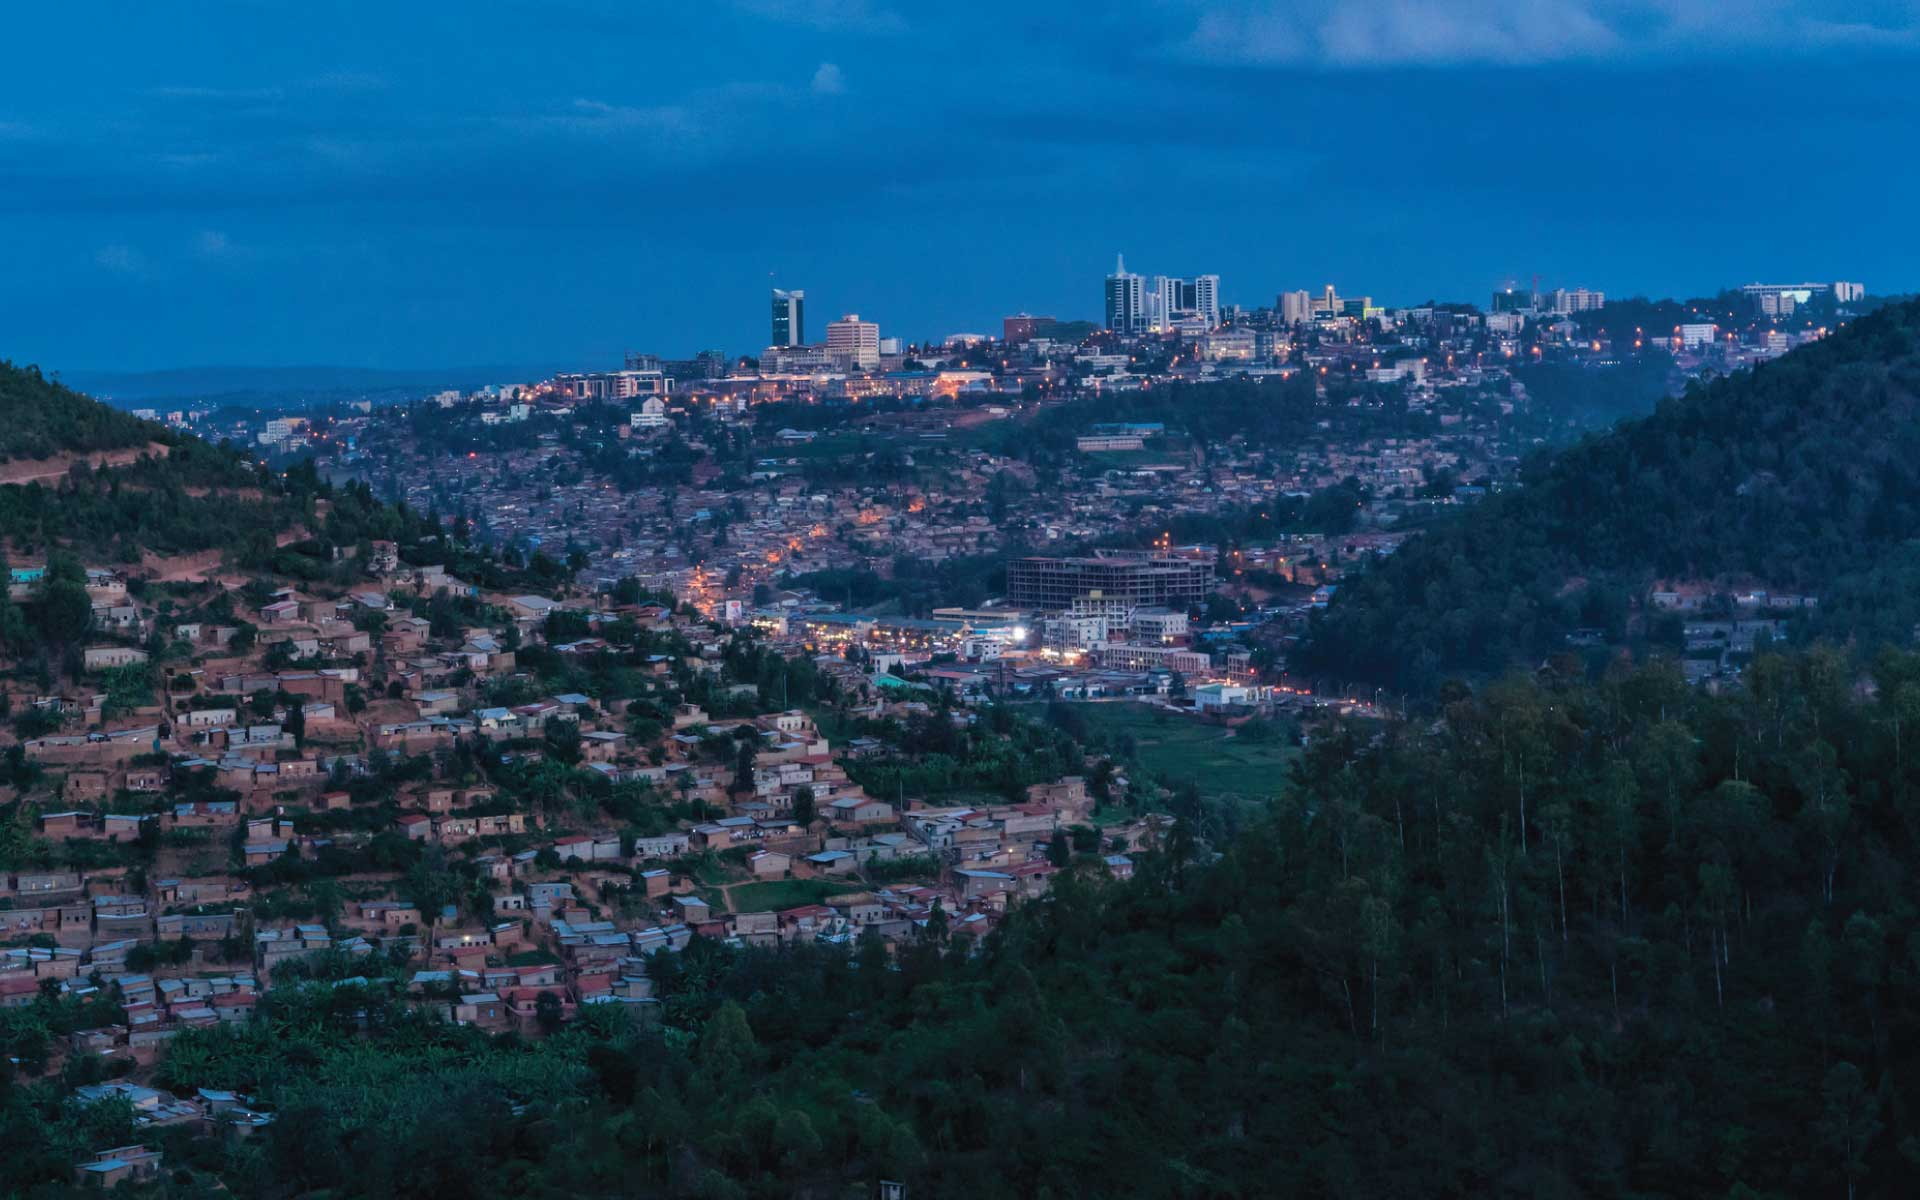 Kigali City Skyline - Things to do in Kigali